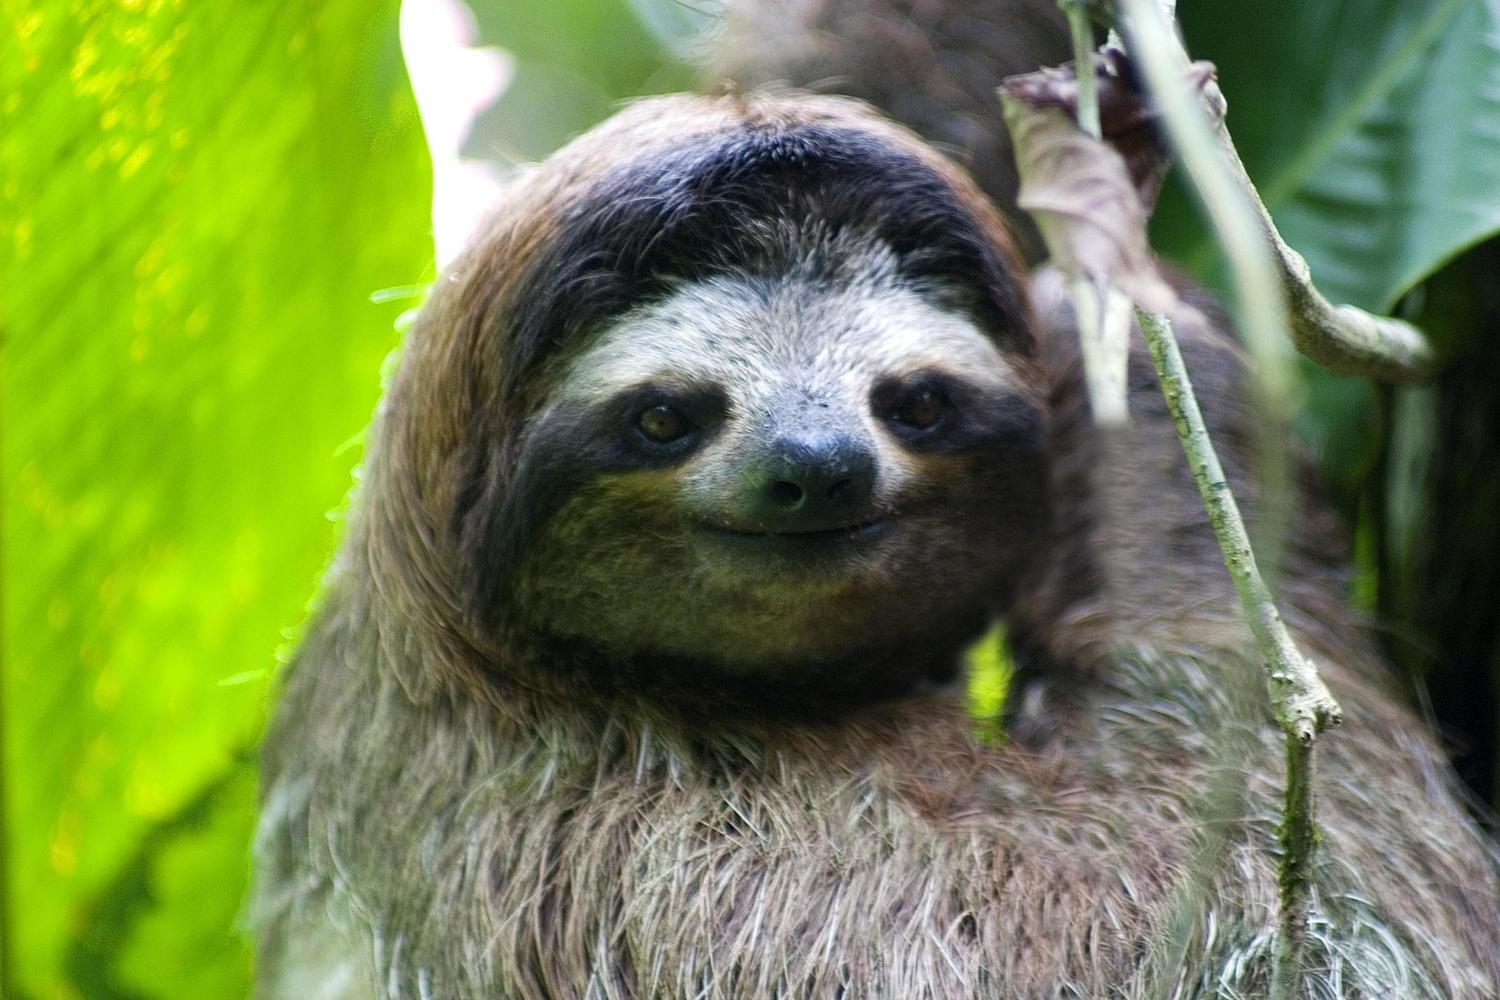 The extraordinary features of a sloth